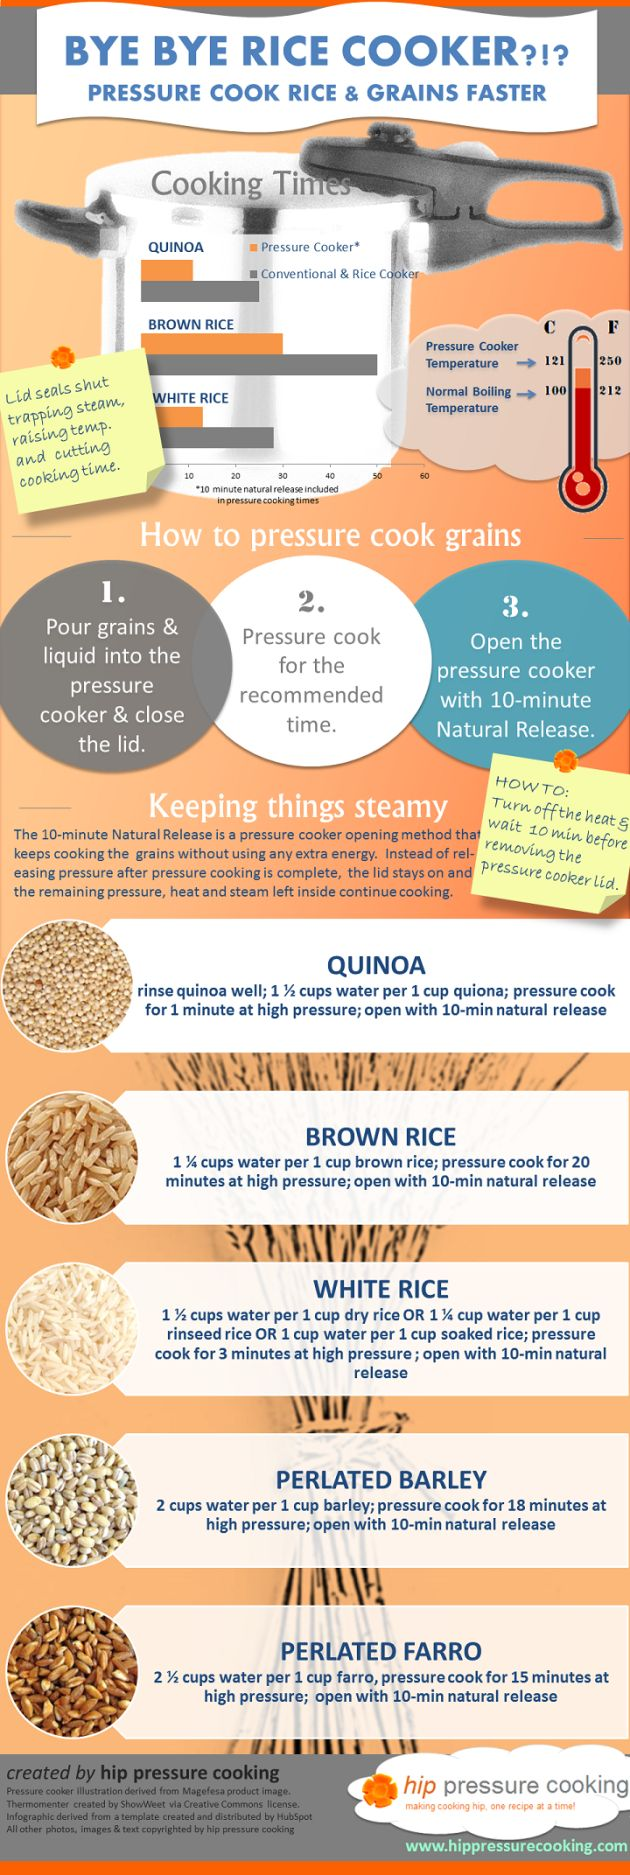 Pressure Cooker Infographic on Rice and Grains - please re-pin!